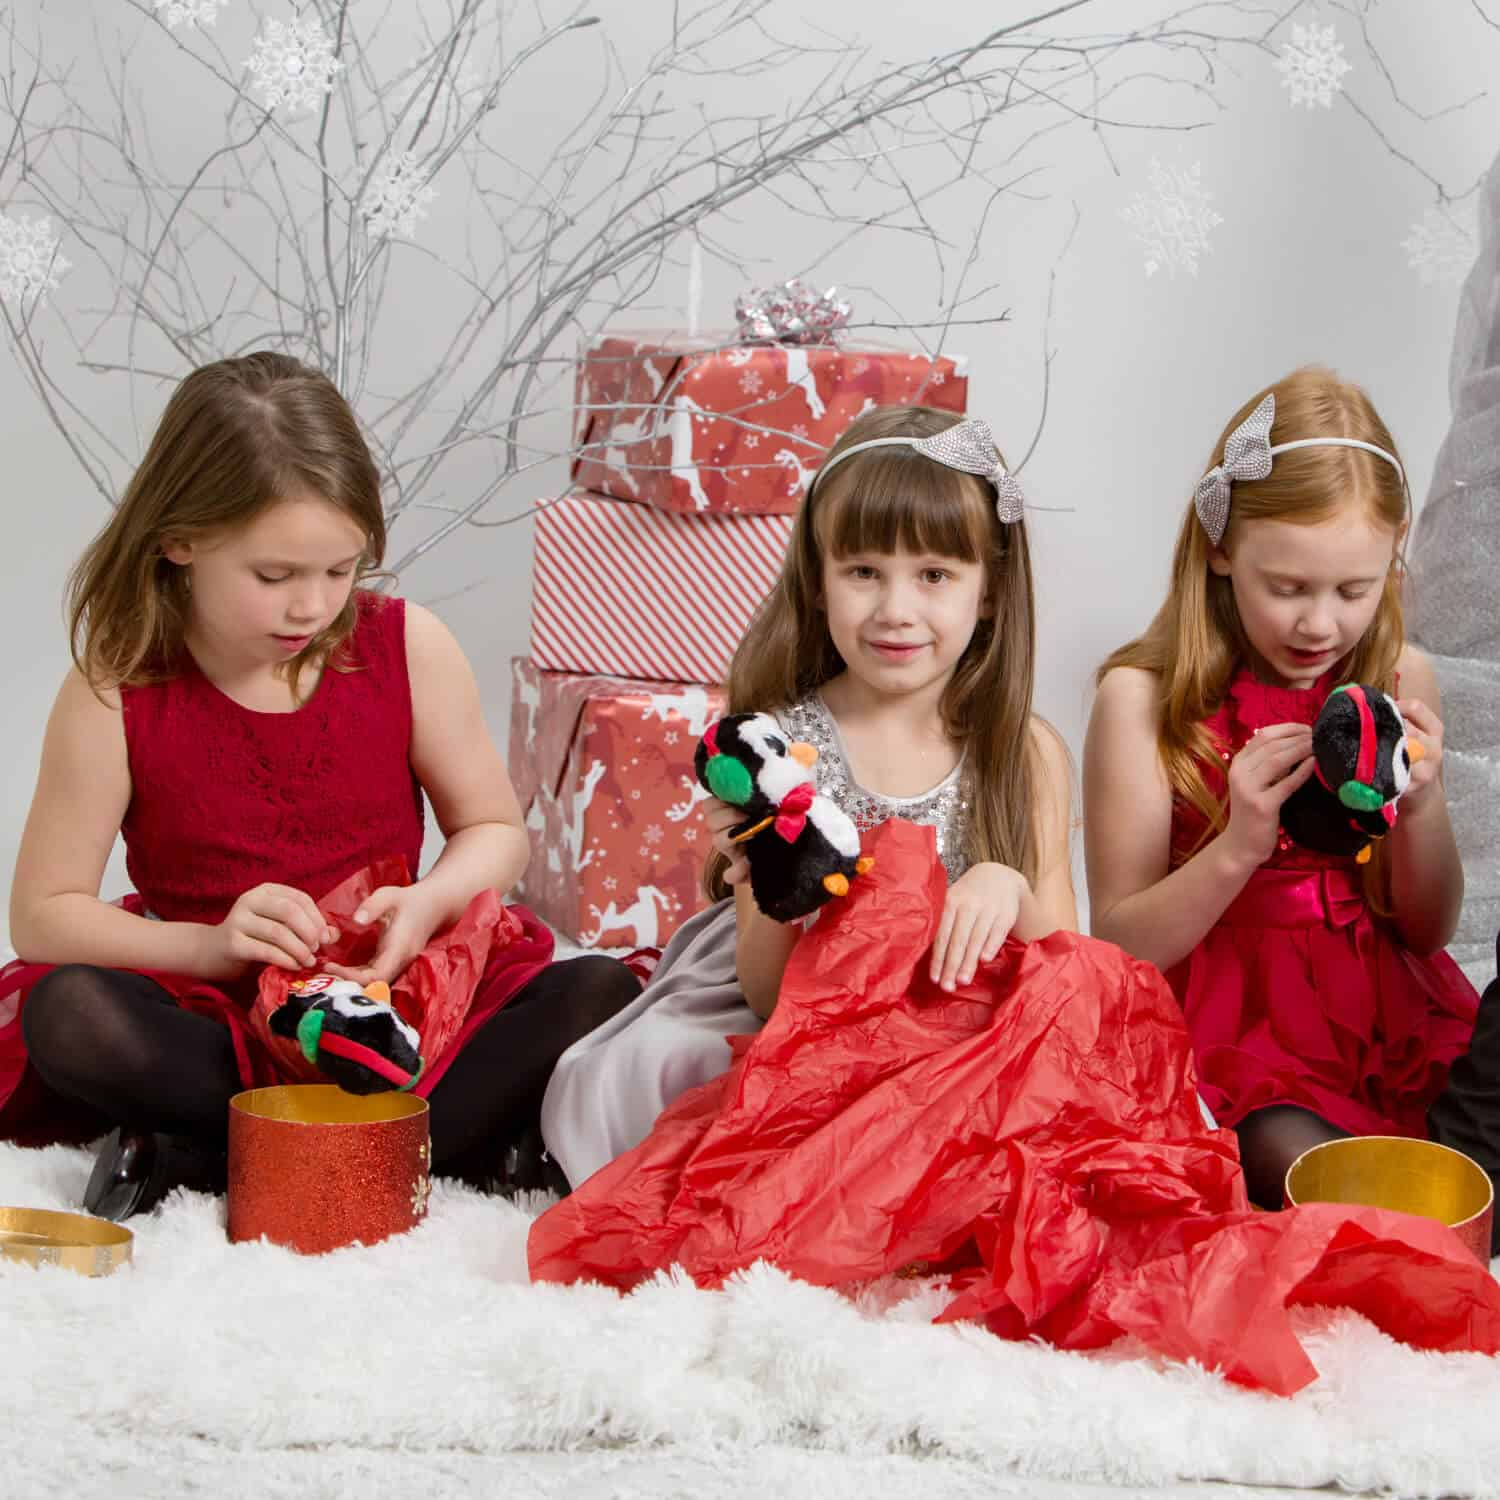 Girls opening Christmas gifts